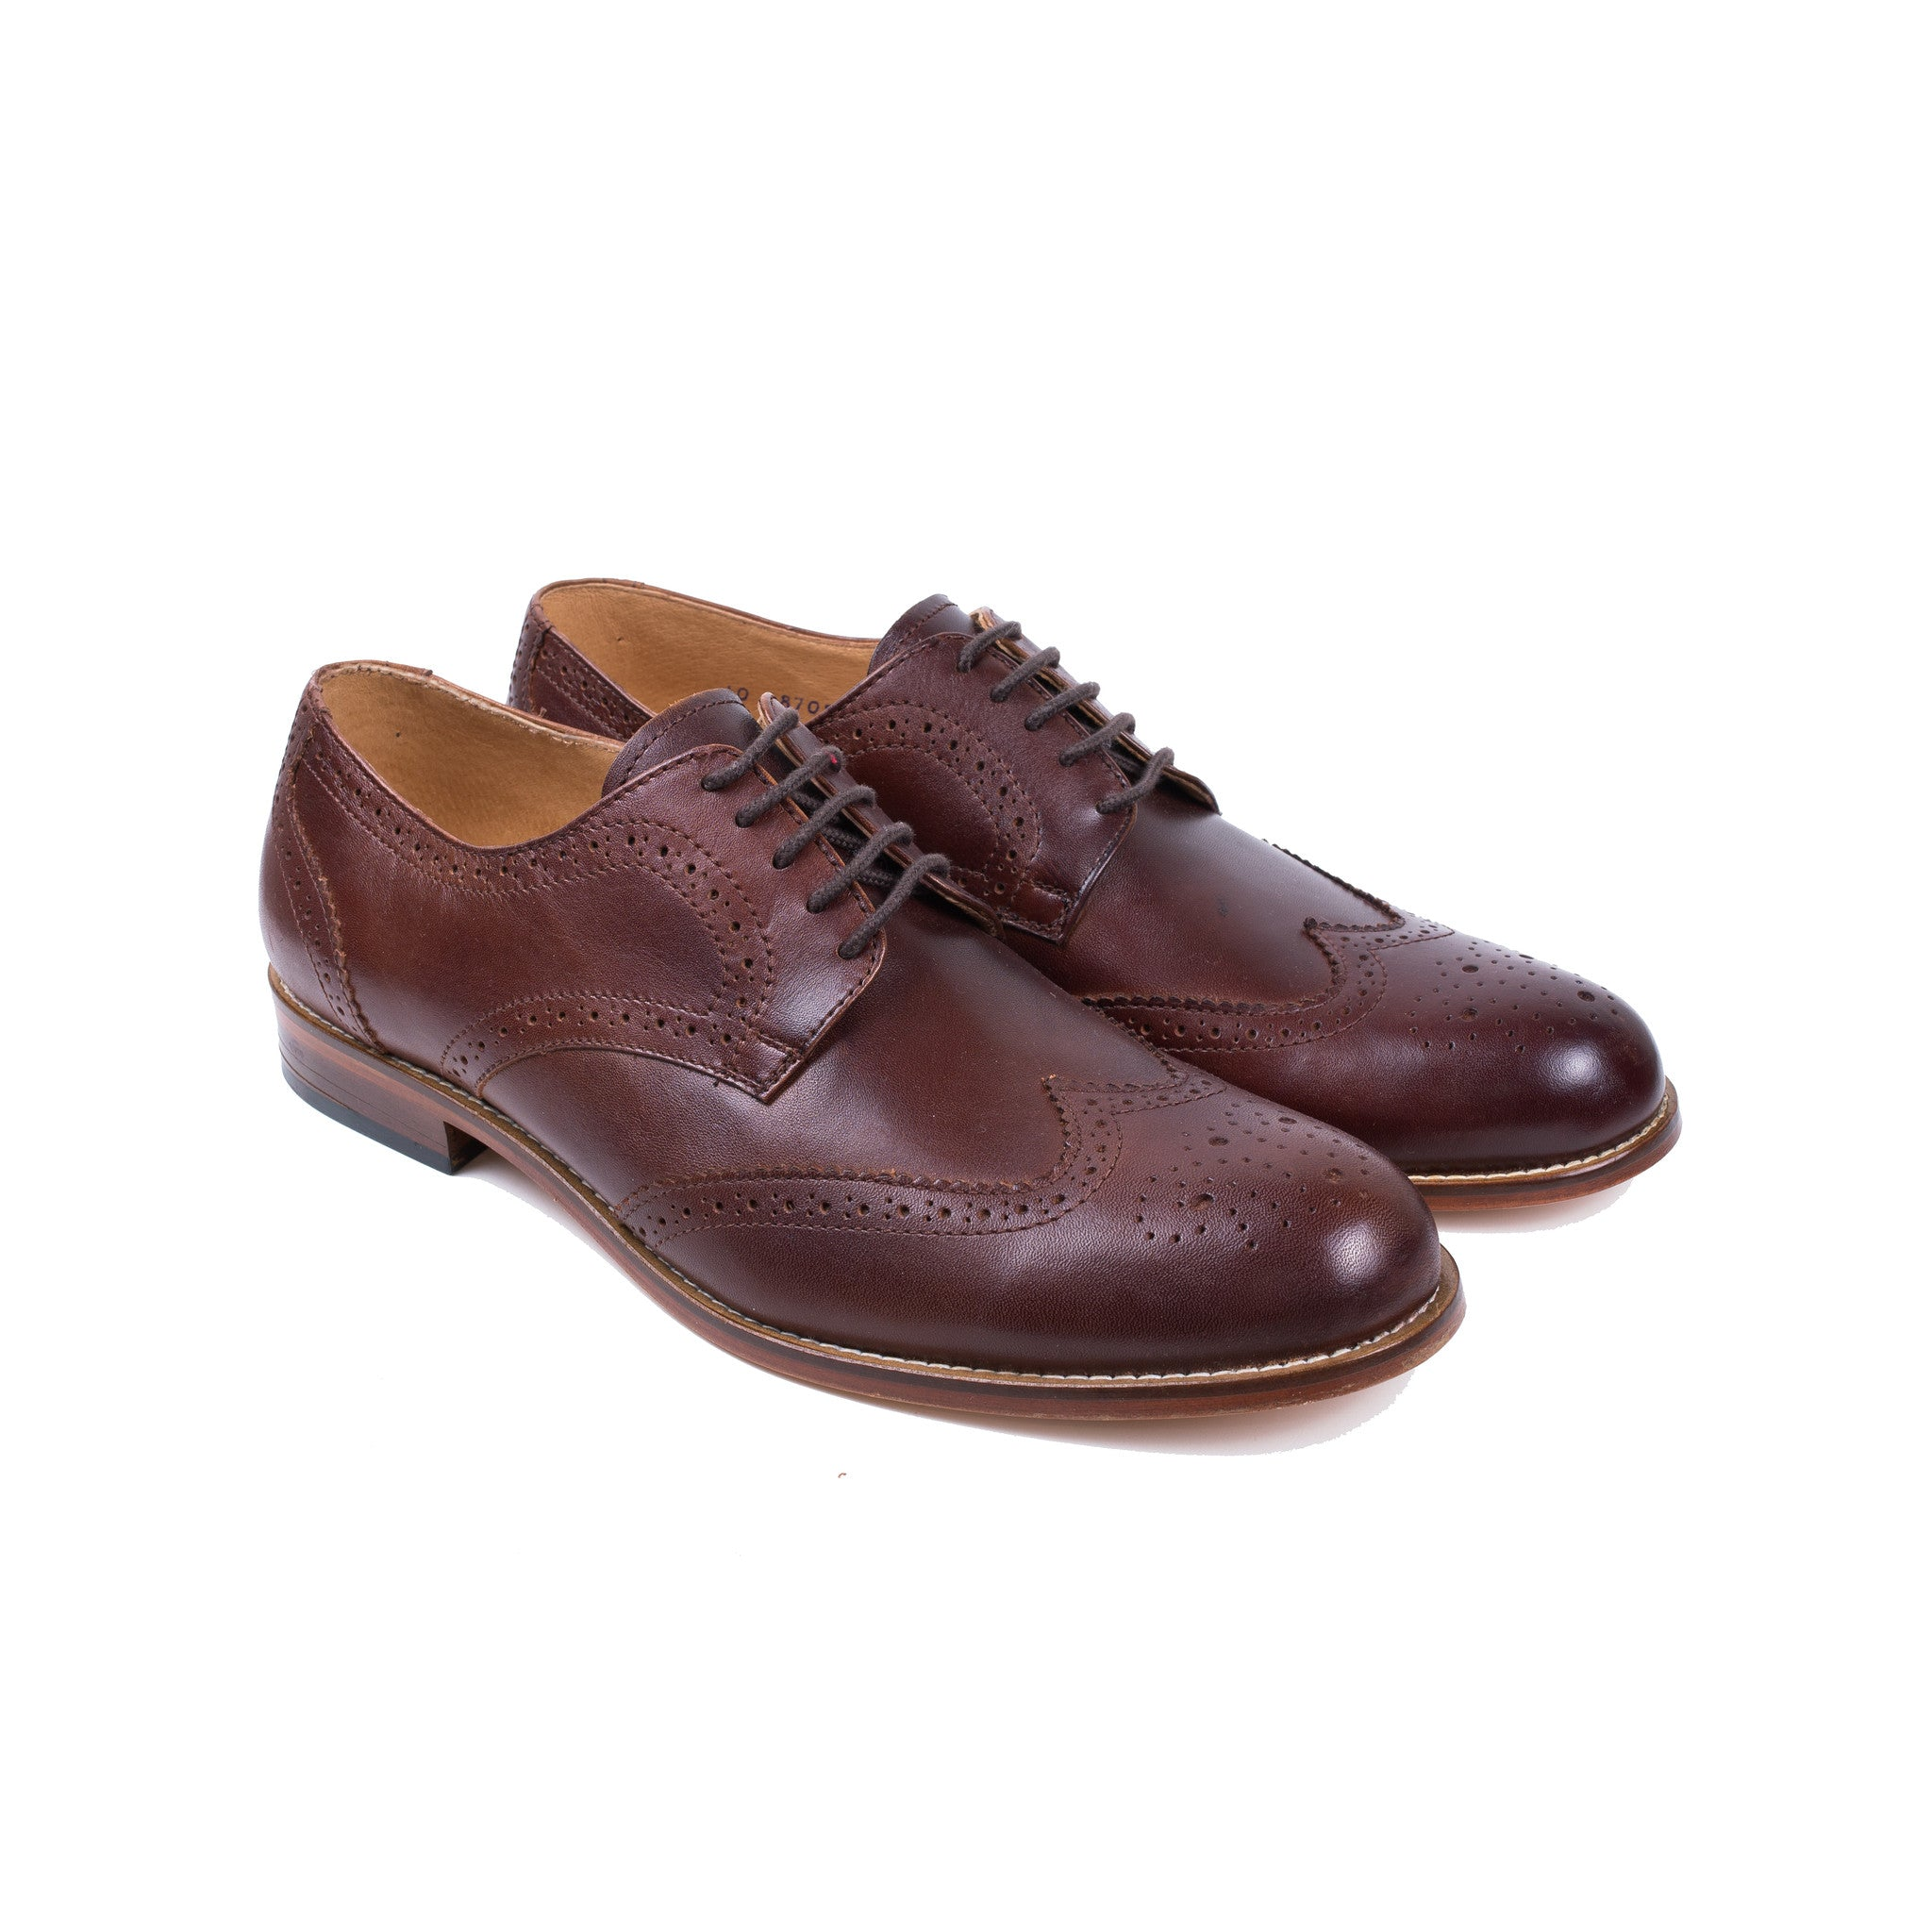 Wingtip Shoe in Chocolate